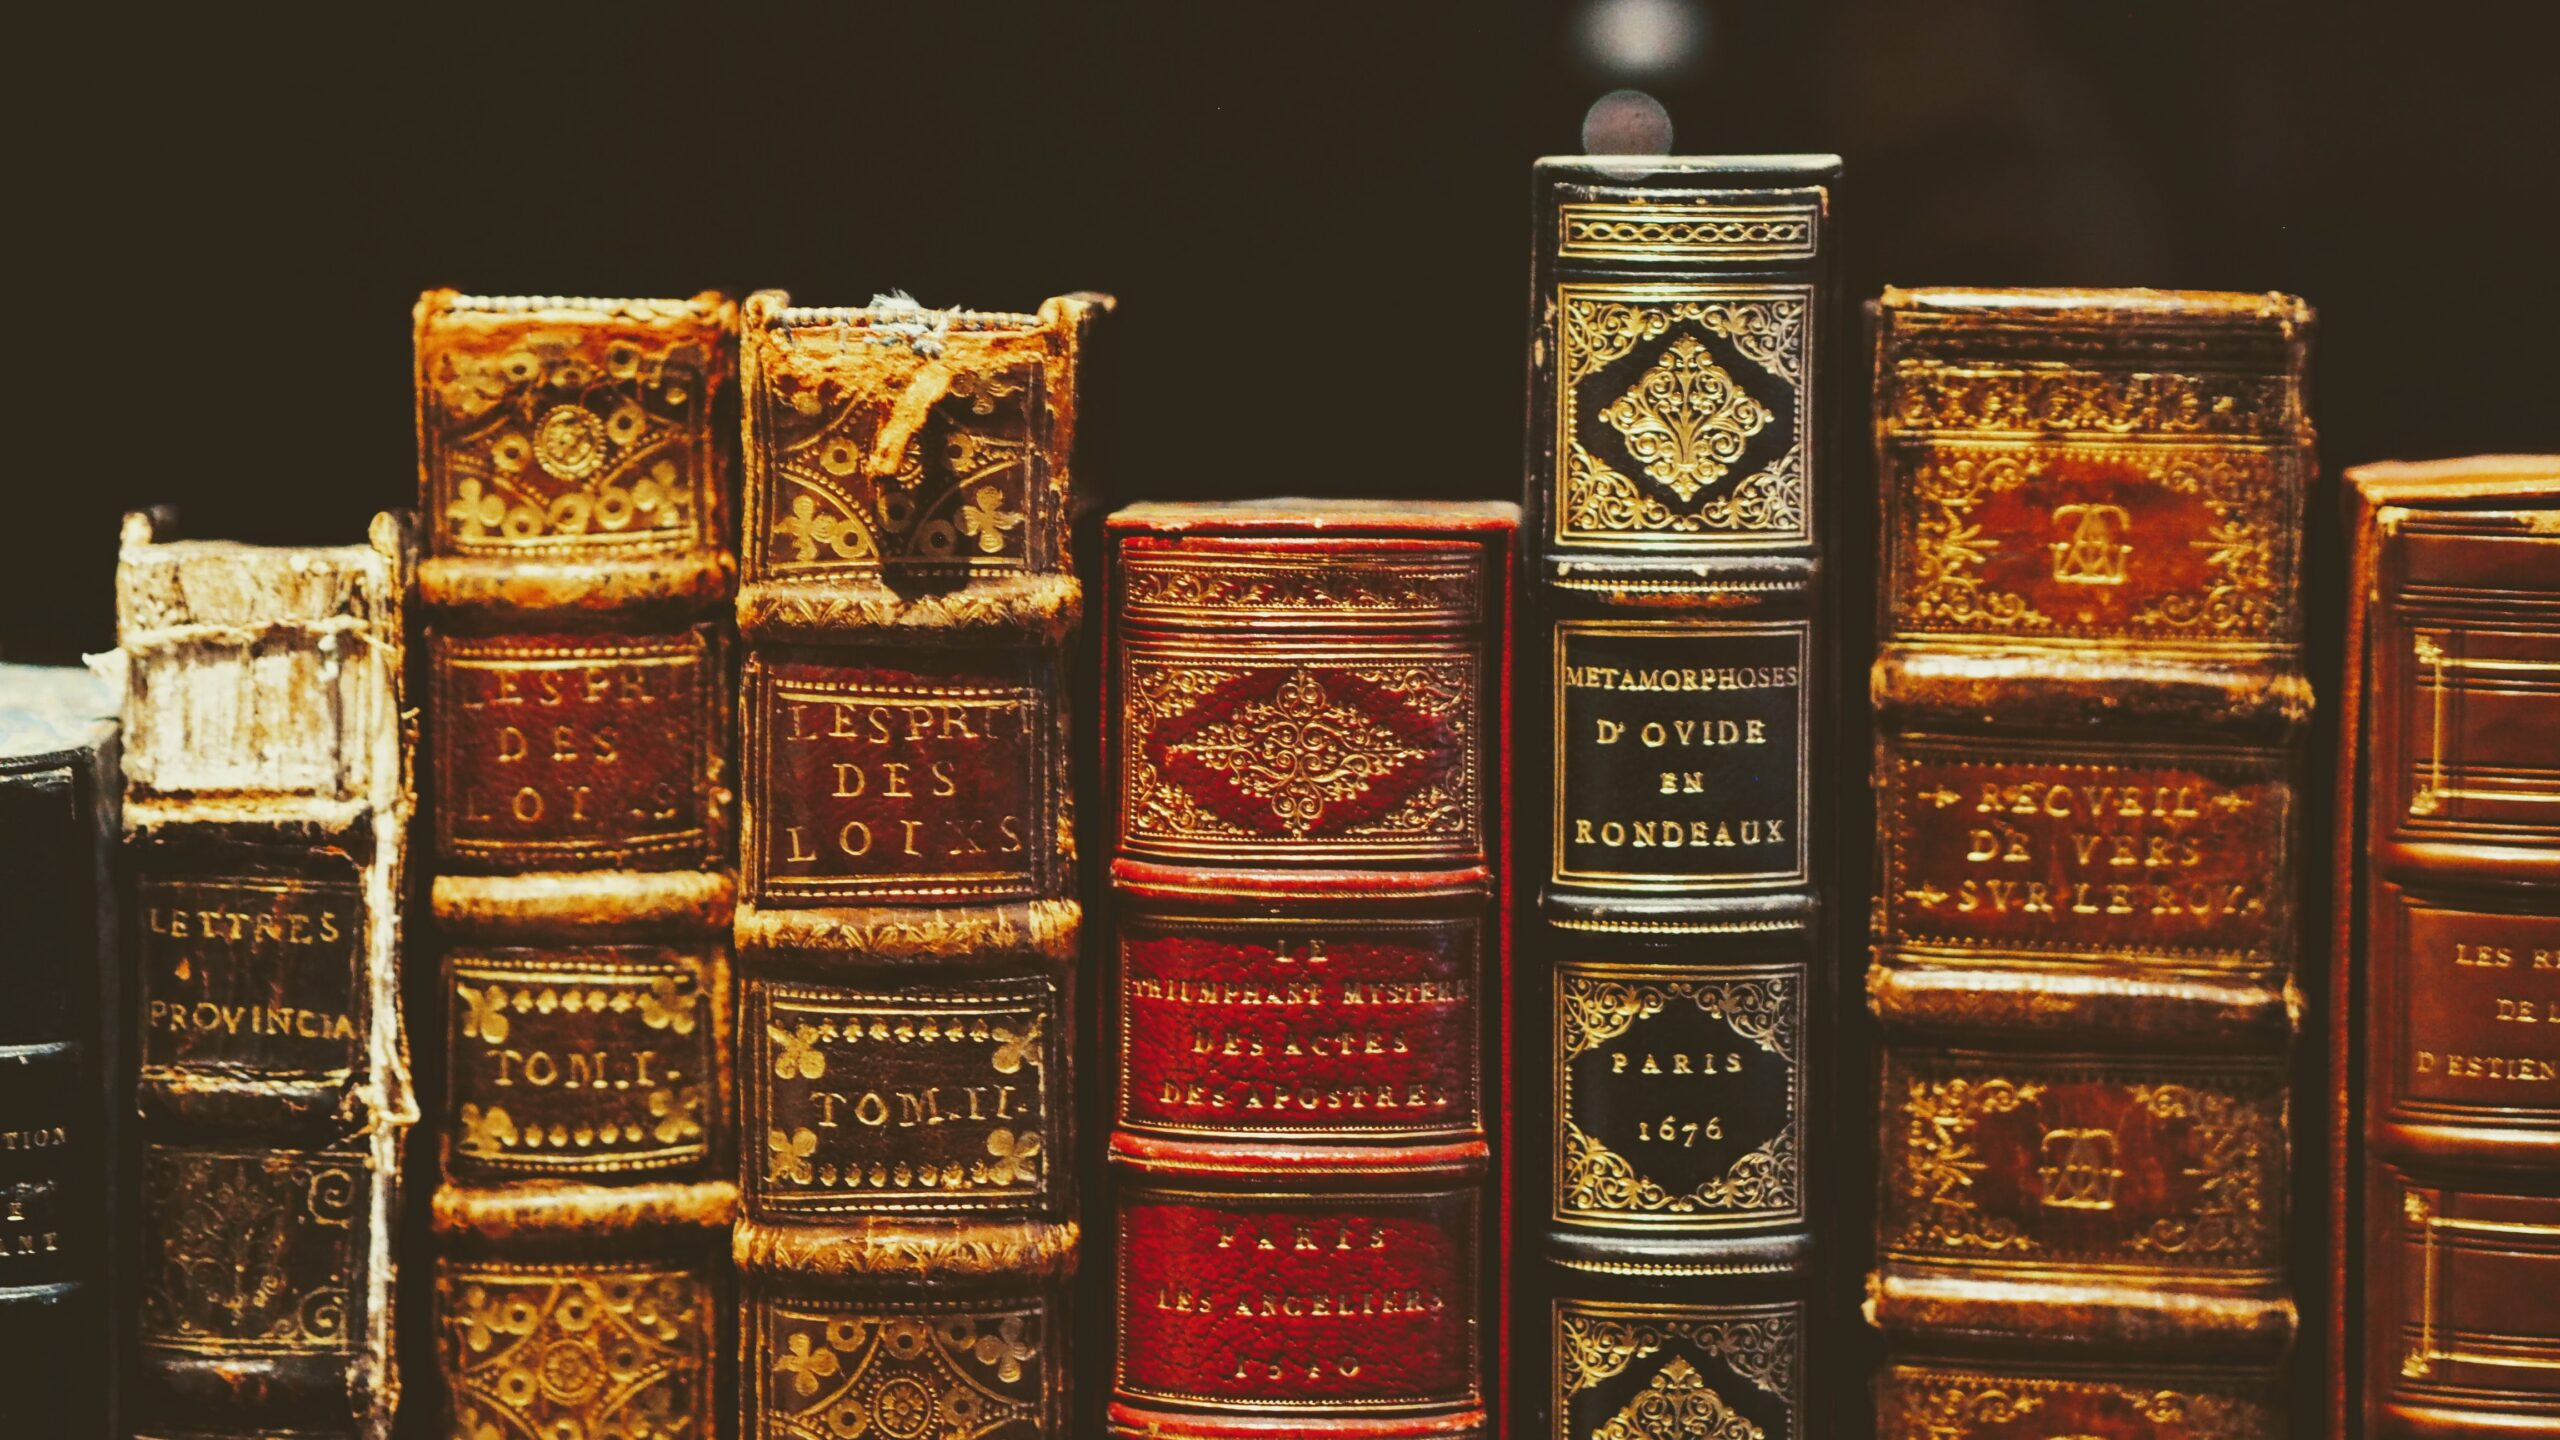 Binds of old books